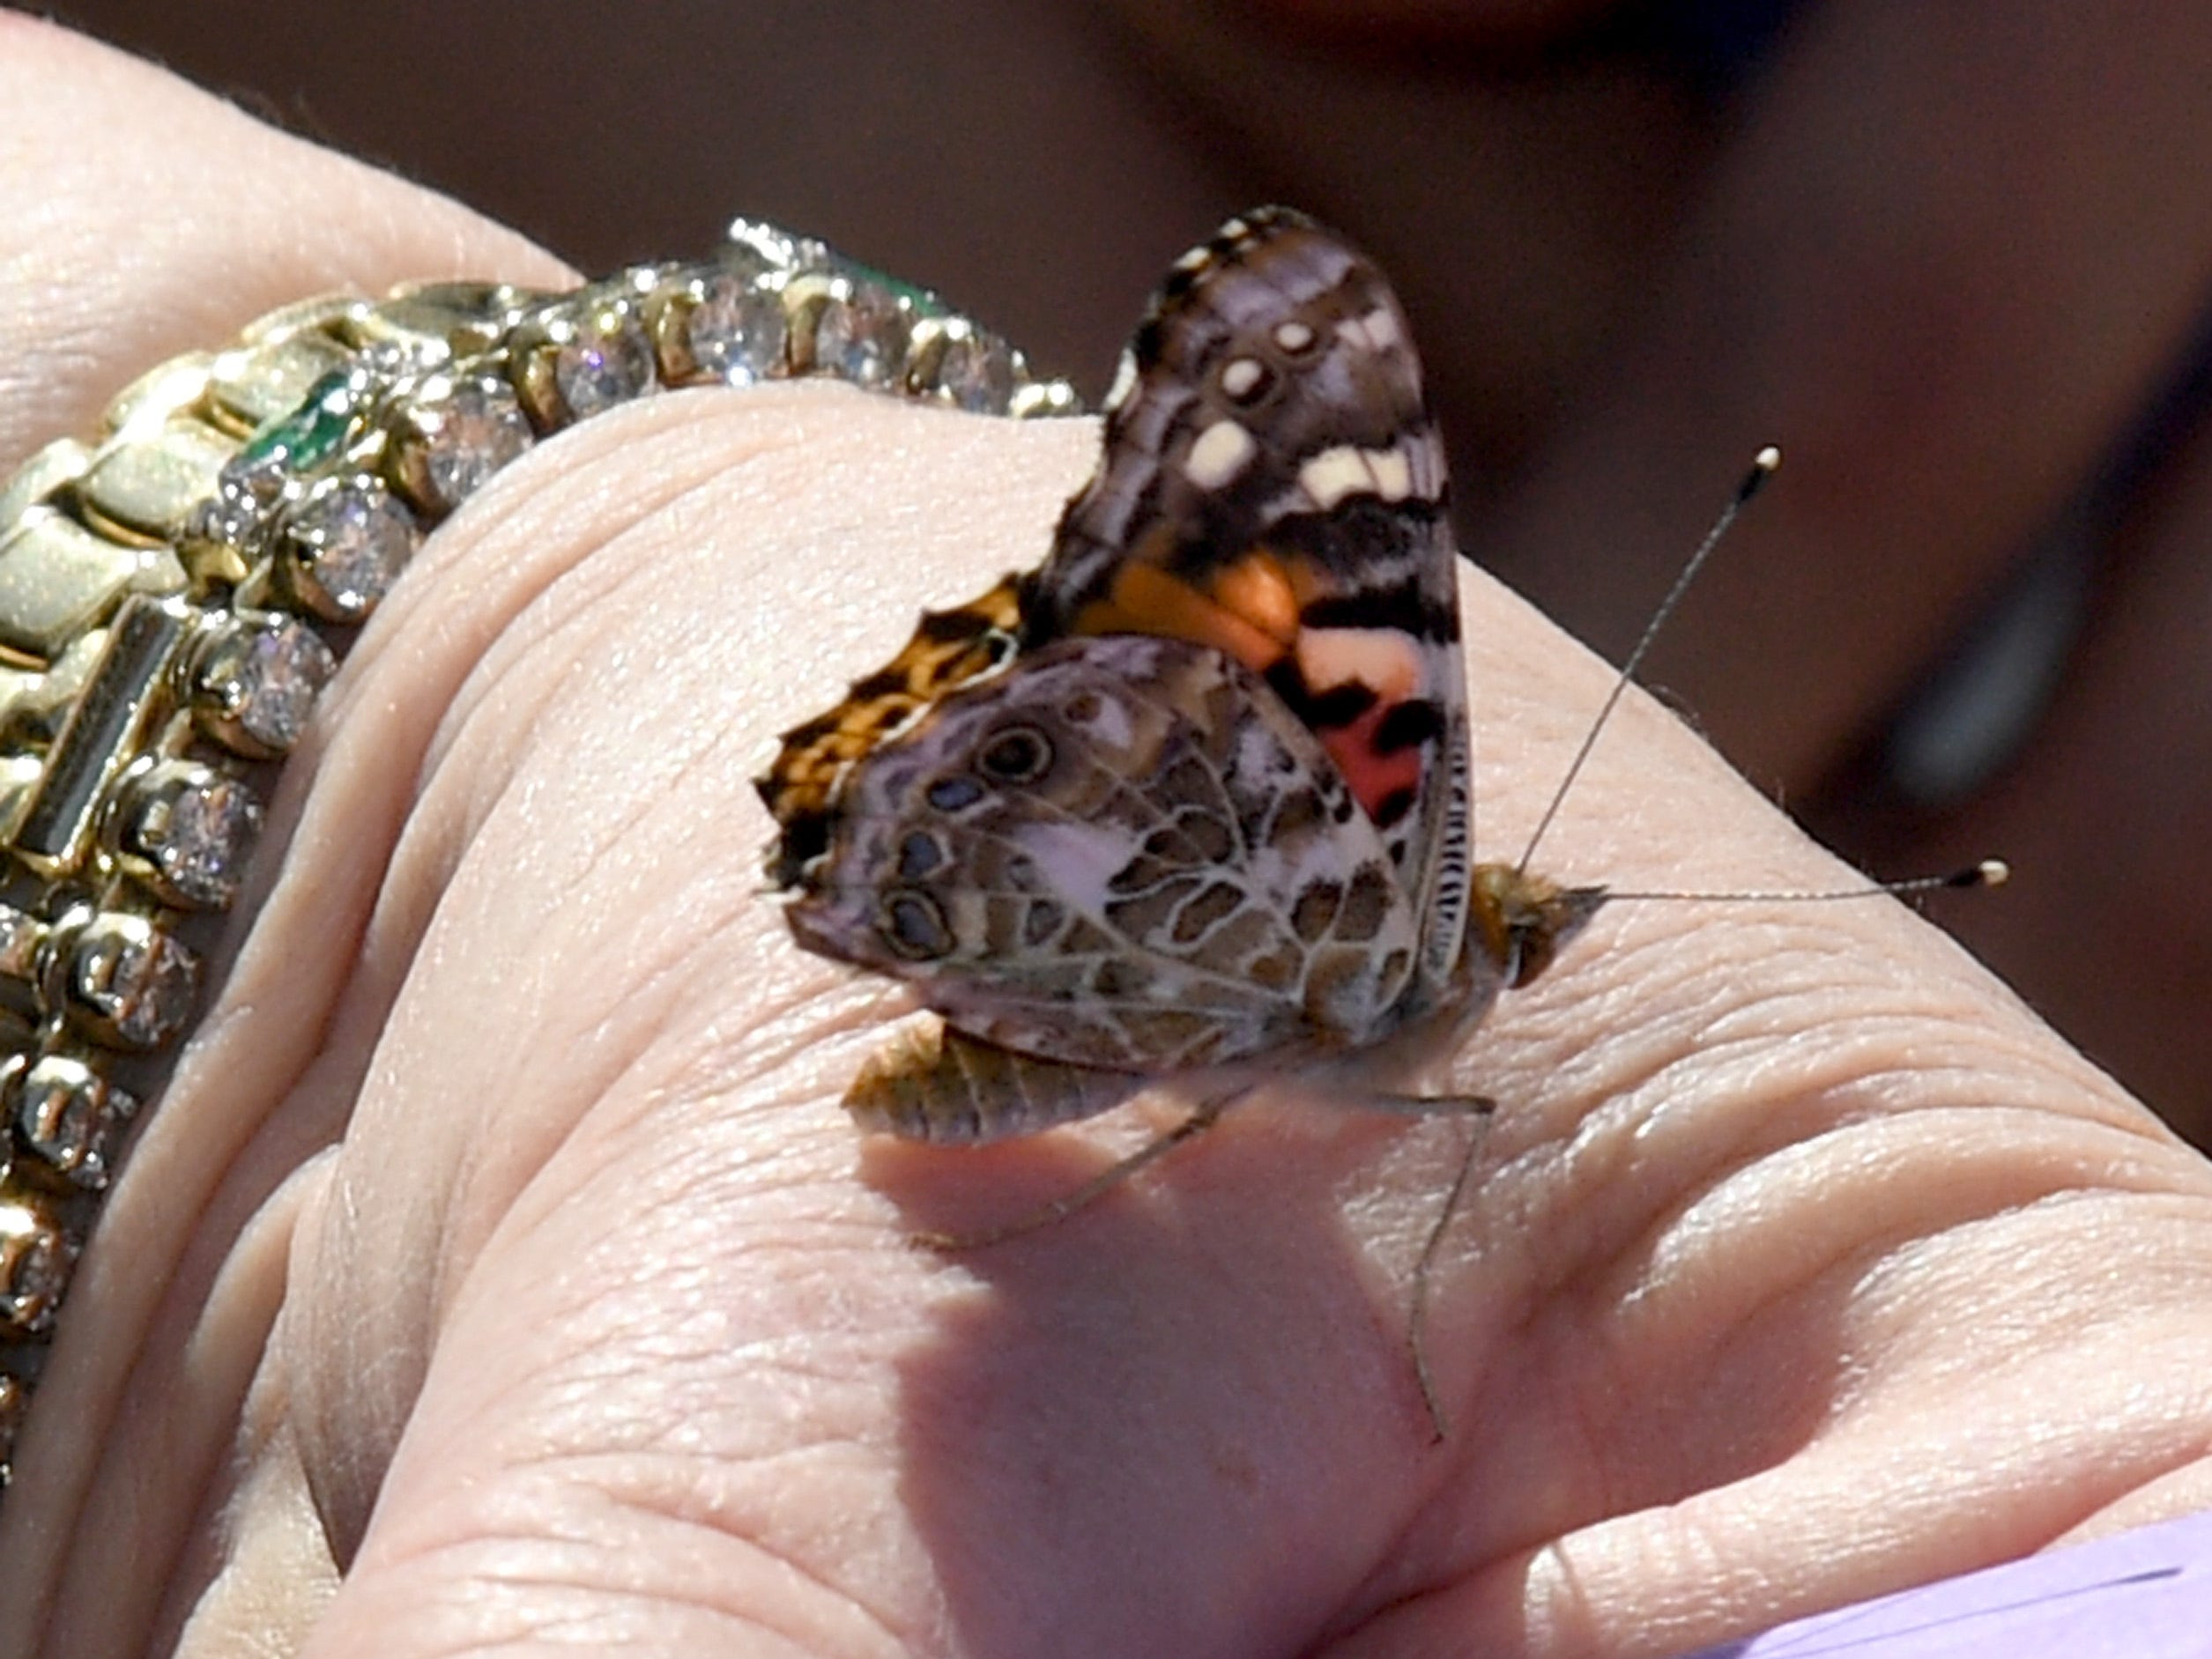 Mayor Carolyn Goodman releases a painted lady butterfly during the Nathan Adelson Hospice Route 91 Remembrance ceremony at the Las Vegas Community Healing Garden, in partnership with the City of Las Vegas and ACM Lifting Lives, on April 8, 2018 in Las Vegas, Nevada.